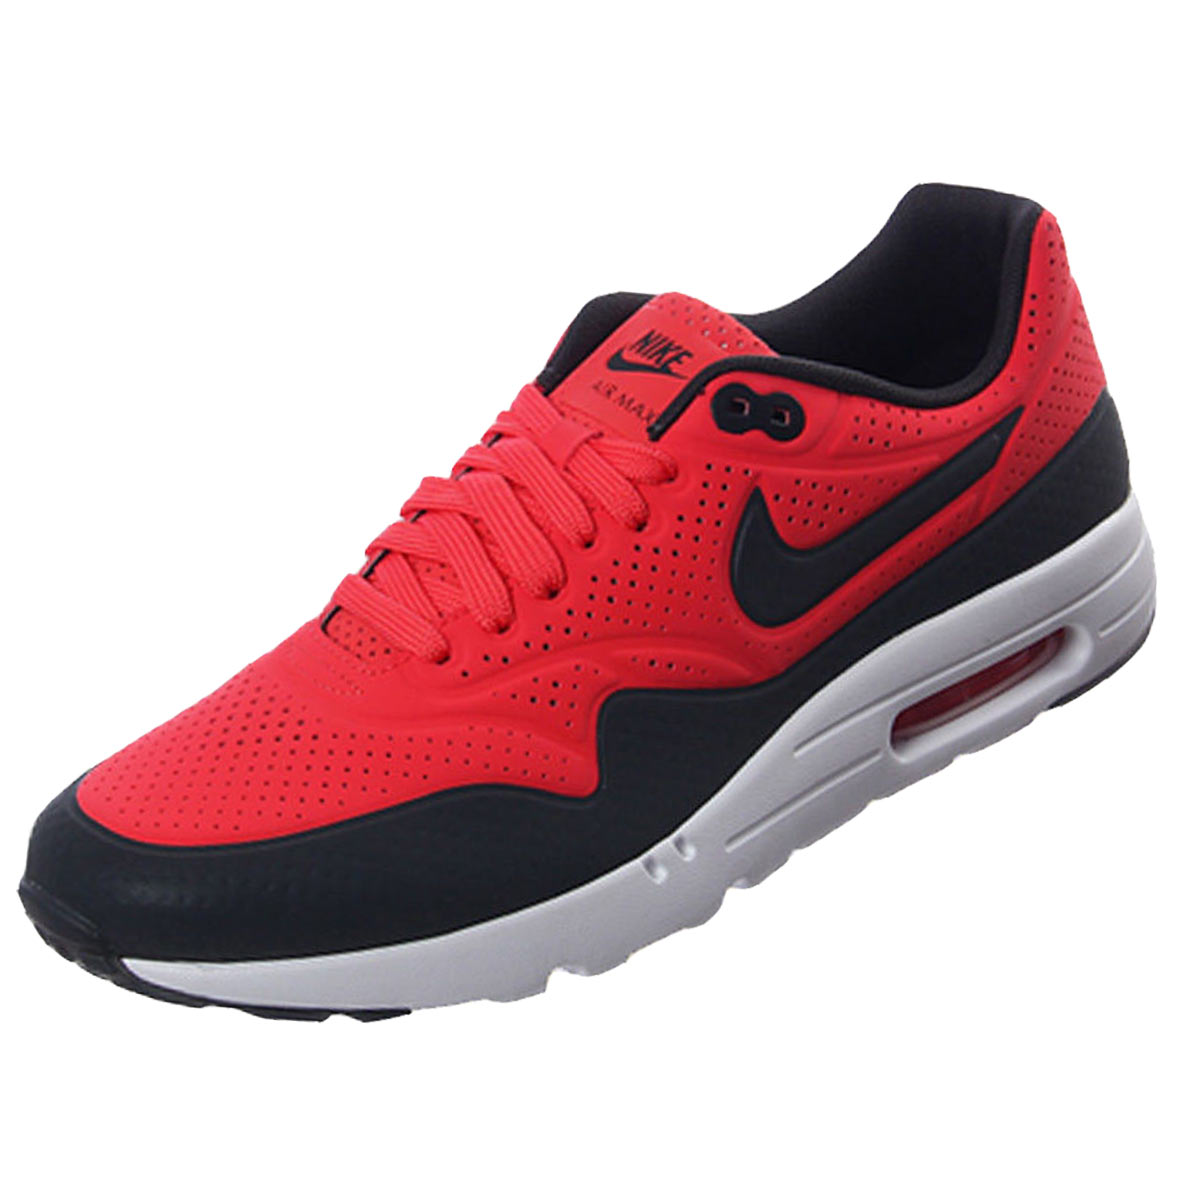 Nike Air Max 1 Ultra Moire Rio Red Mens Sneakers Shoes MyCraze